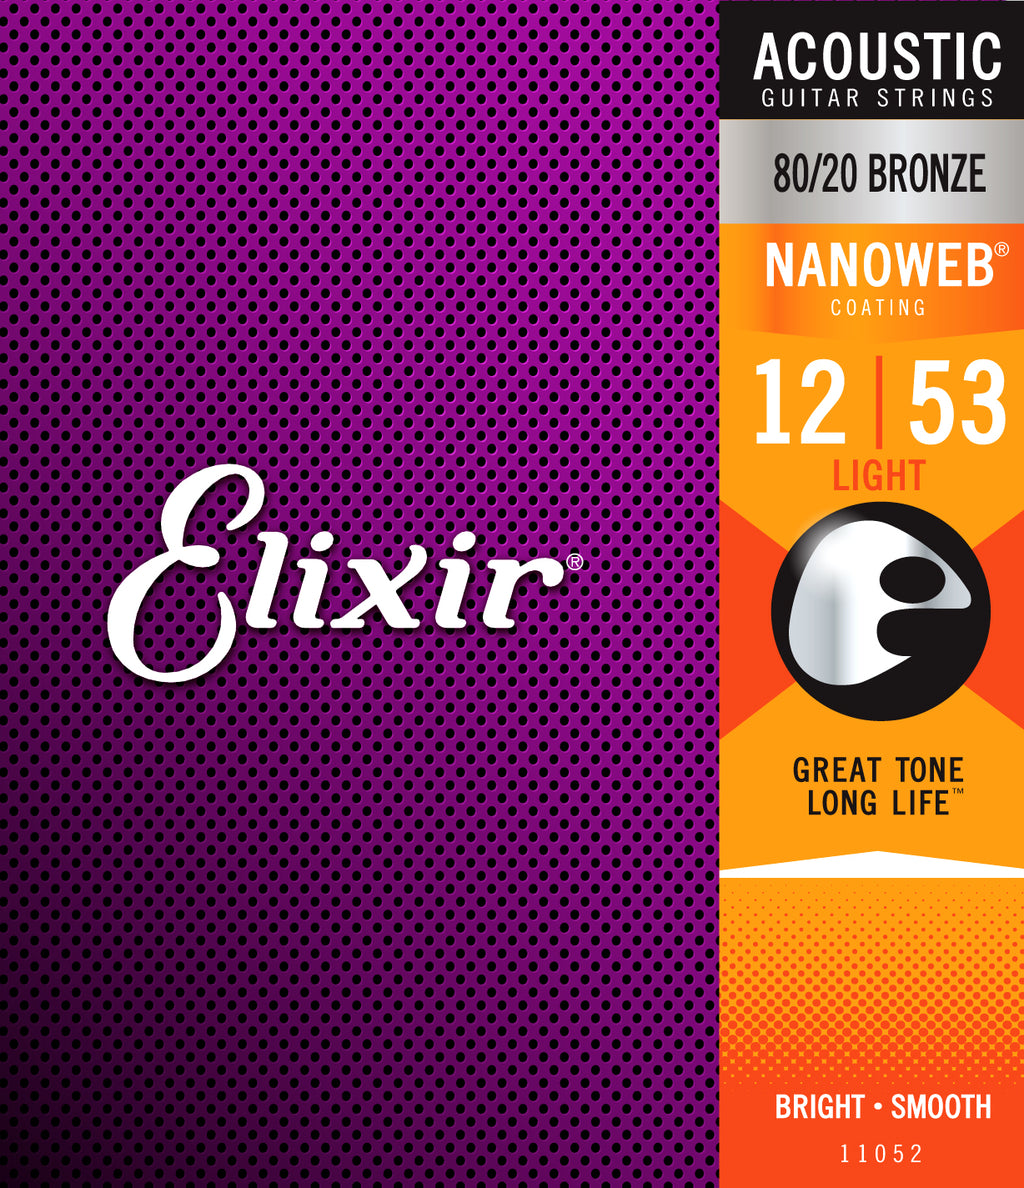 Elixir 11052 Light NanoWeb Acoustic Guitar Strings (12-53)